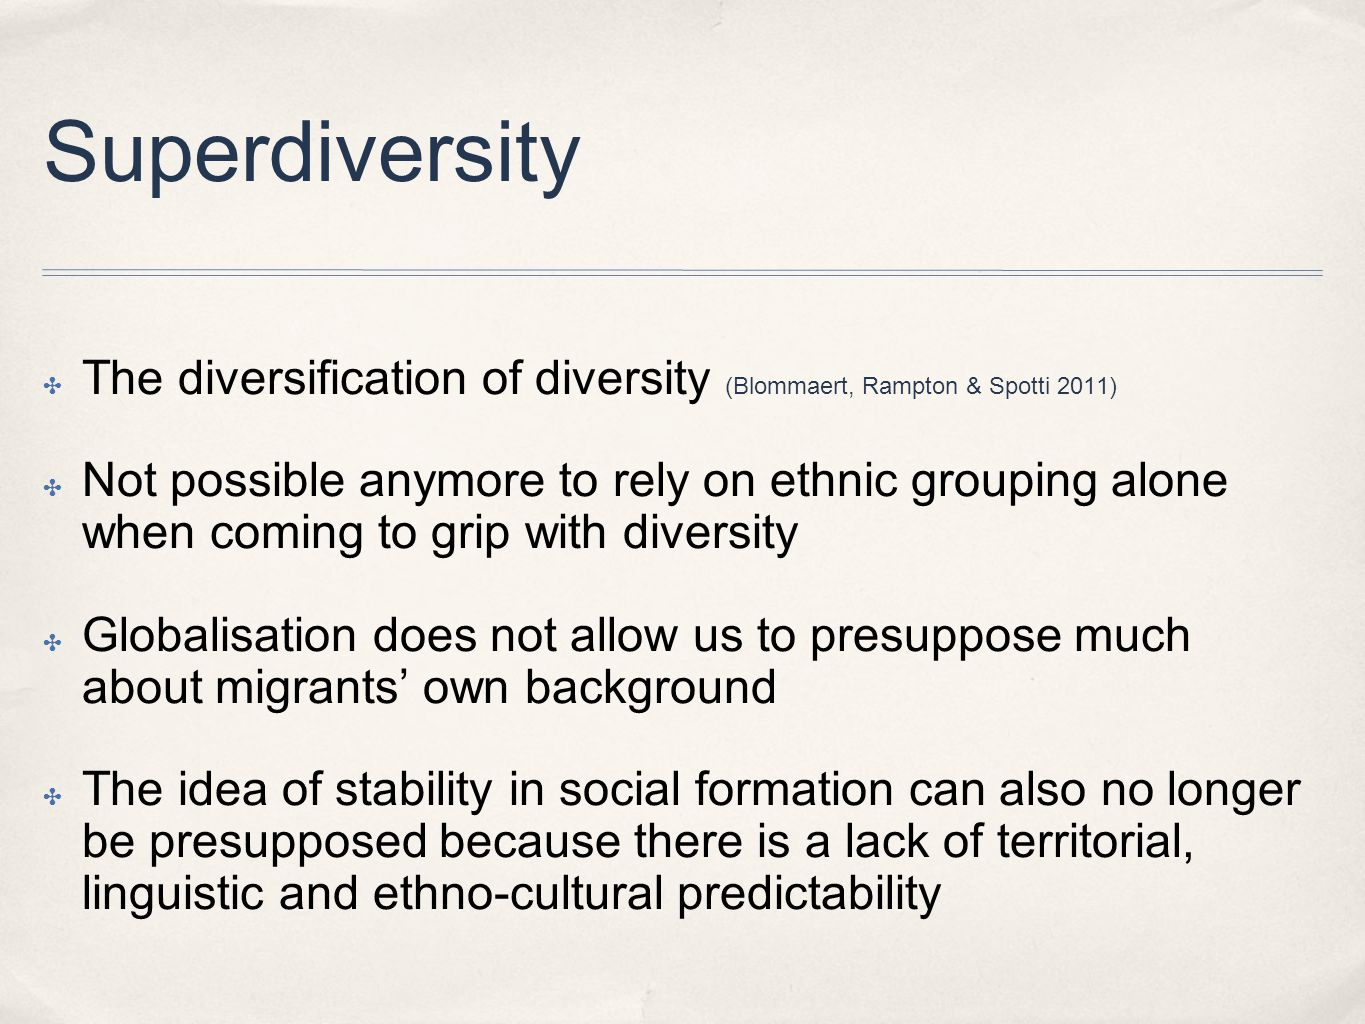 Superdiversity ✤ The diversification of diversity (Blommaert, Rampton & Spotti 2011) ✤ Not possible anymore to rely on ethnic grouping alone when coming to grip with diversity ✤ Globalisation does not allow us to presuppose much about migrants' own background ✤ The idea of stability in social formation can also no longer be presupposed because there is a lack of territorial, linguistic and ethno-cultural predictability